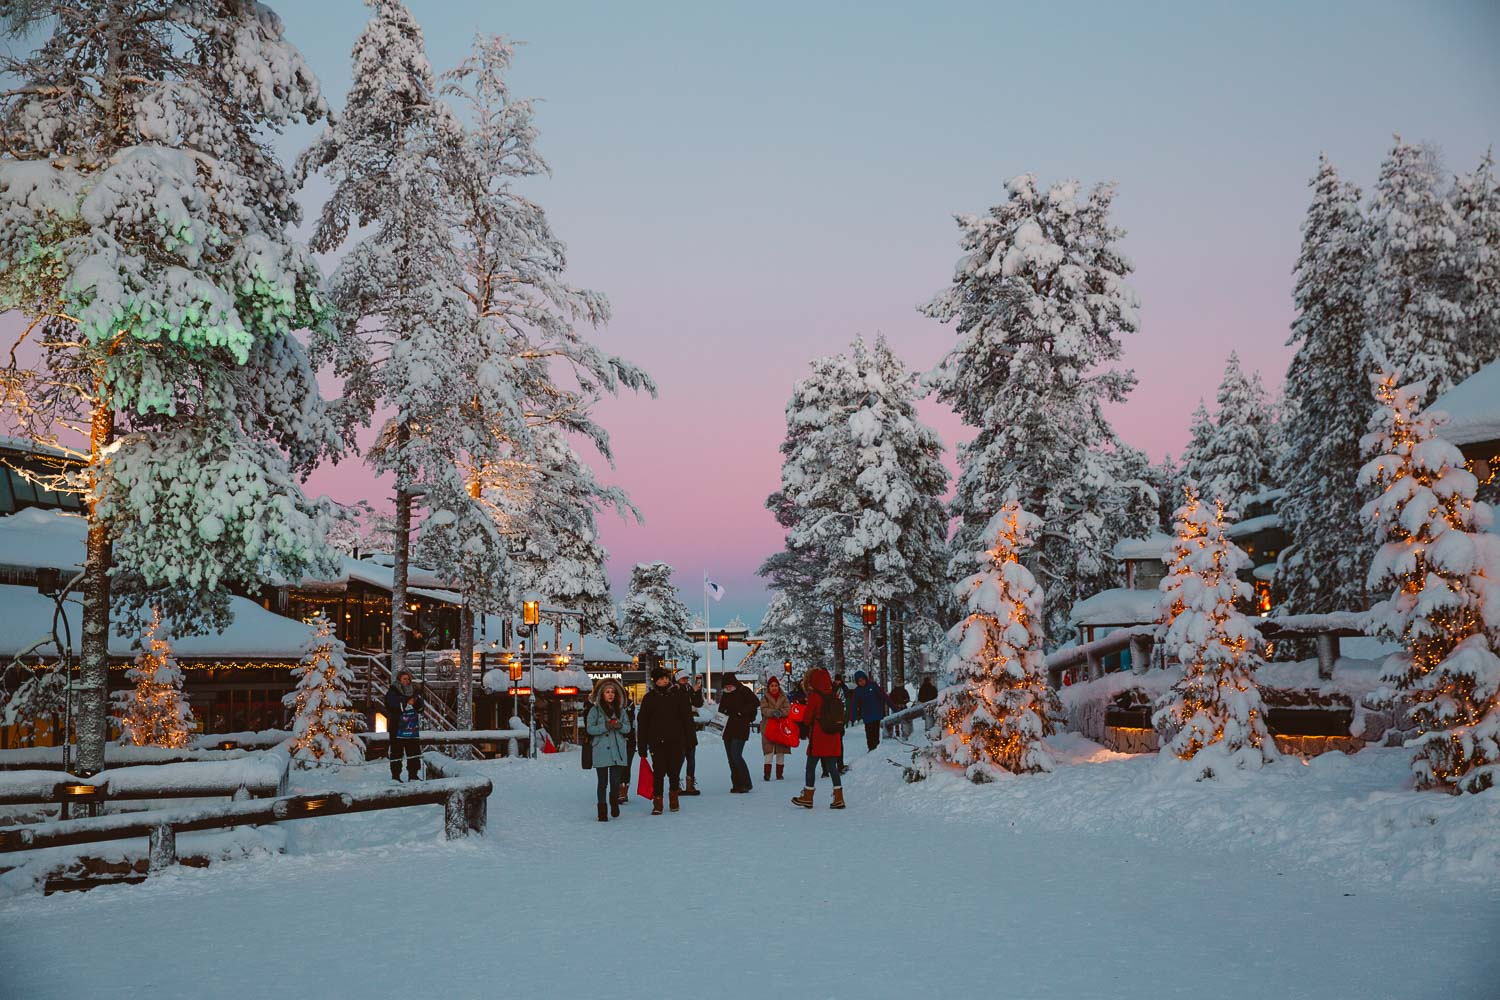 Santa Claus Village at sunset